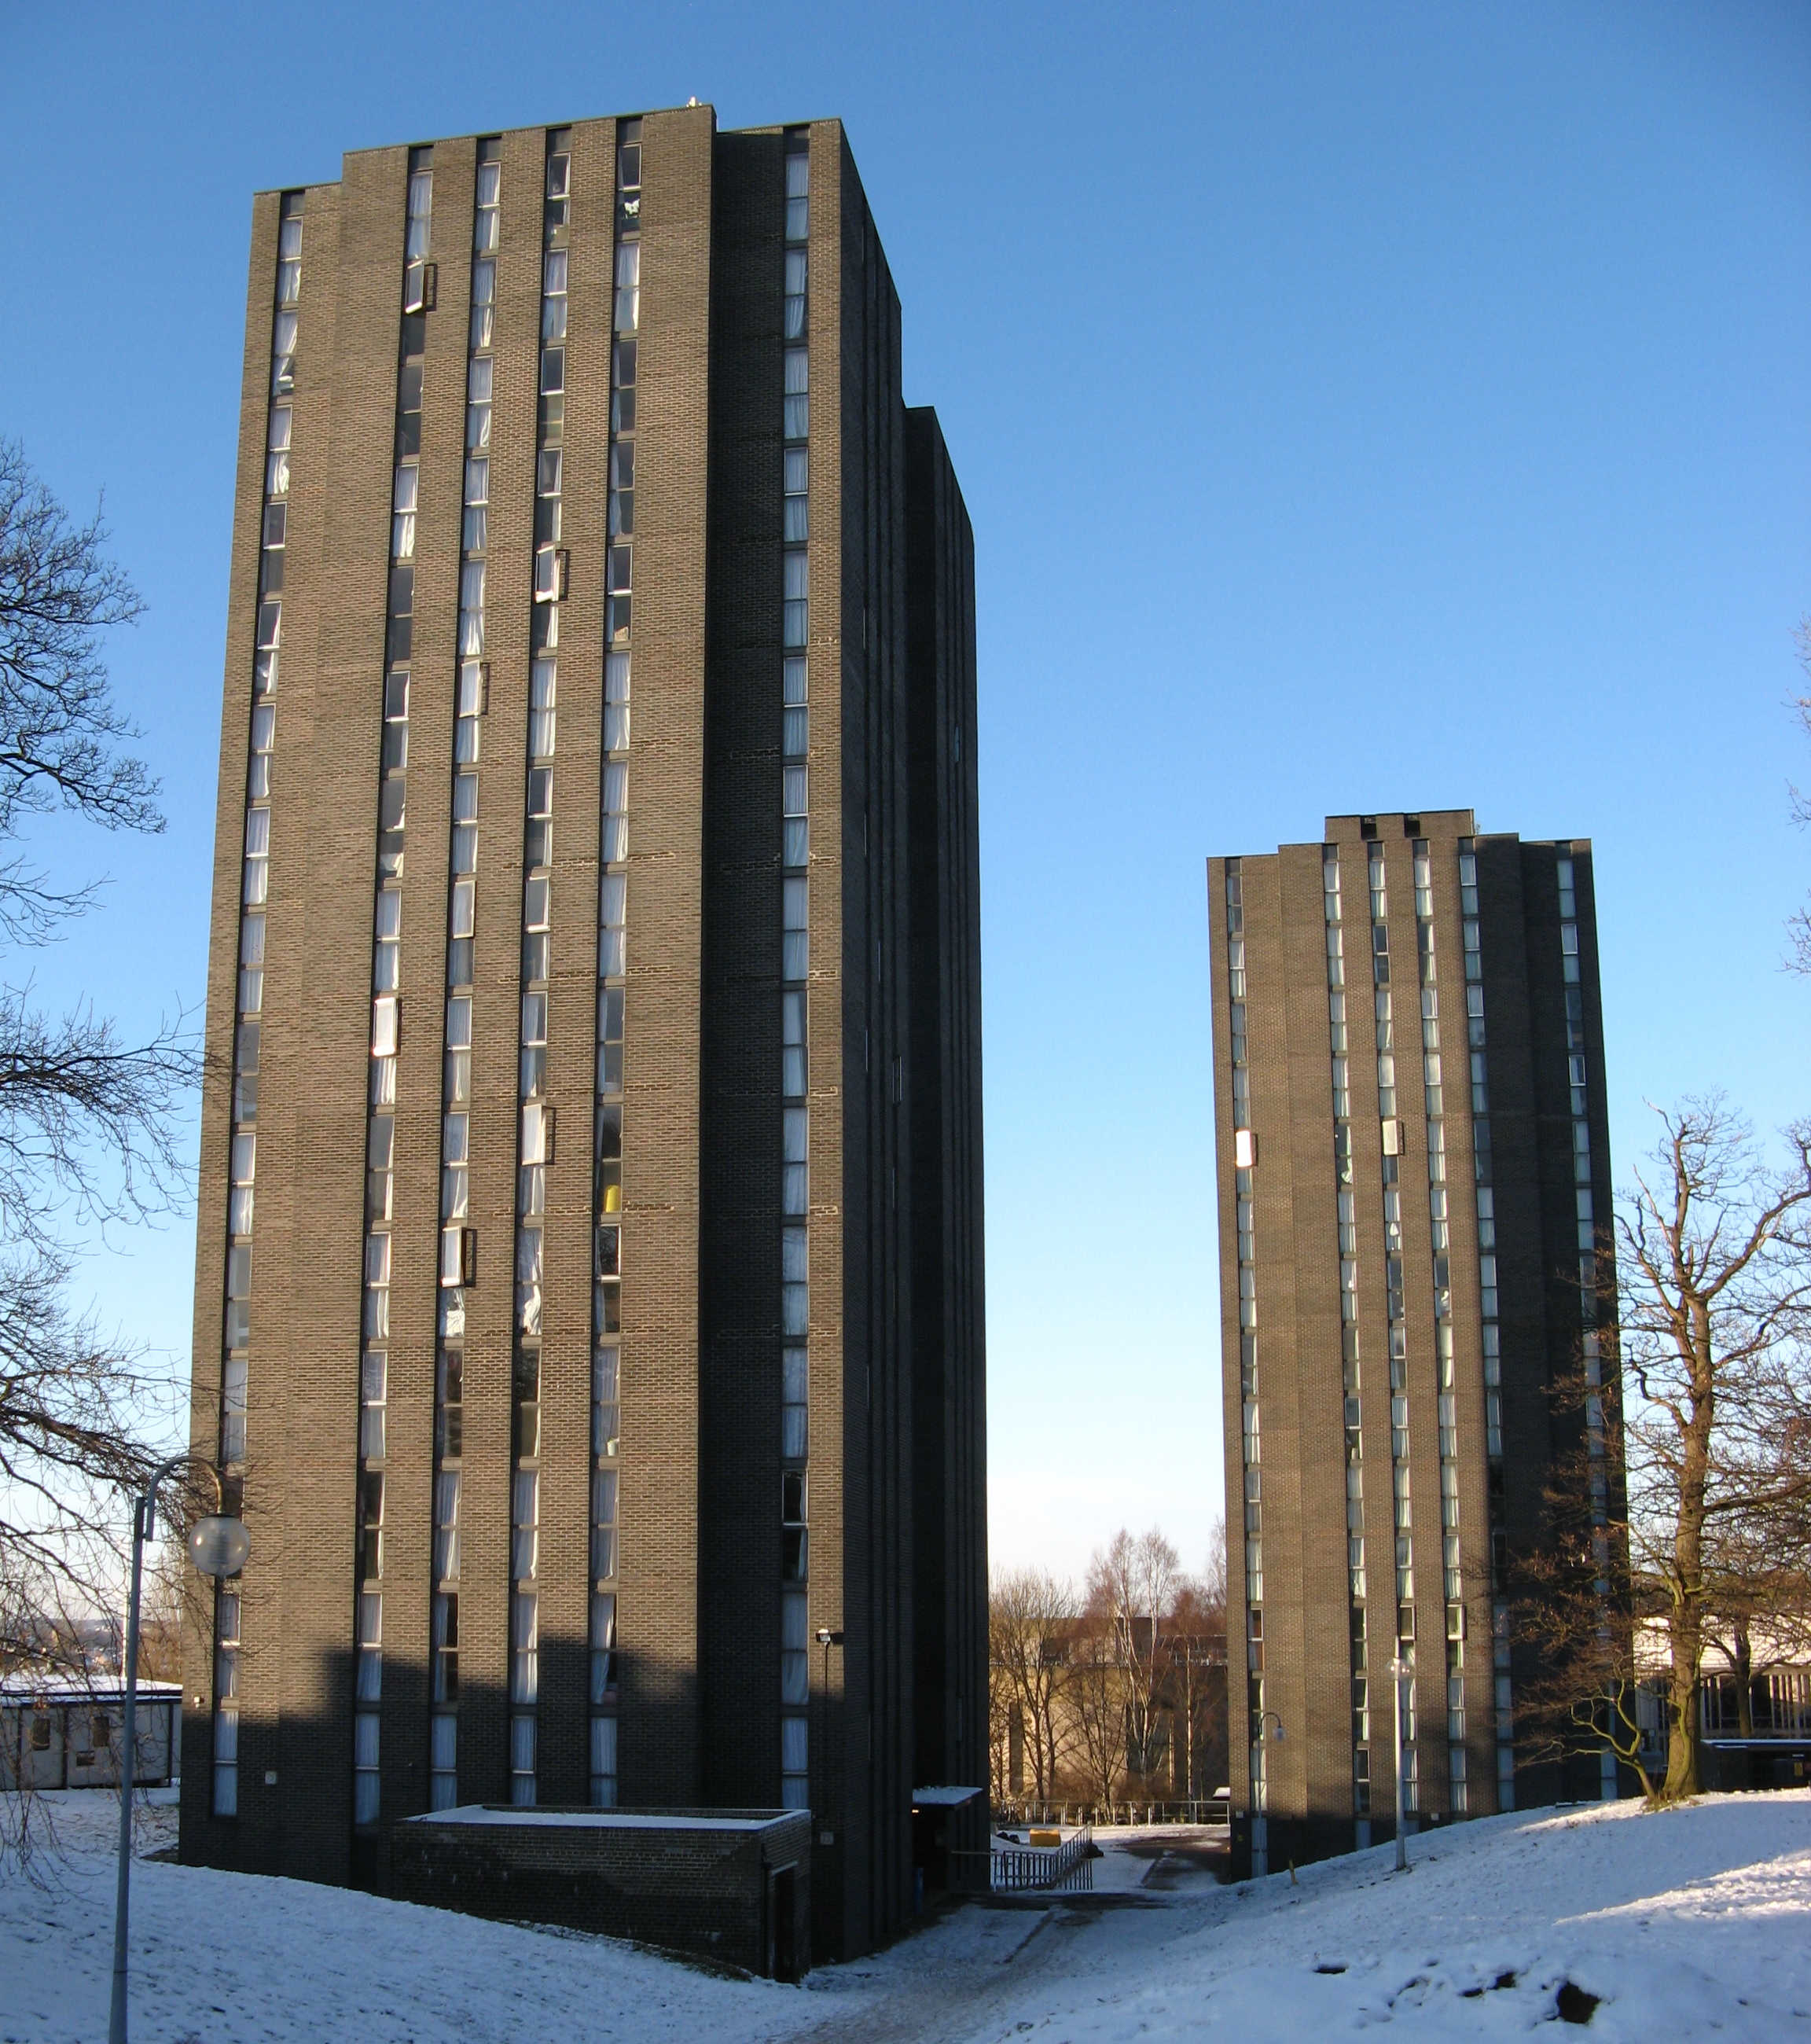 North Park Towers Apartments